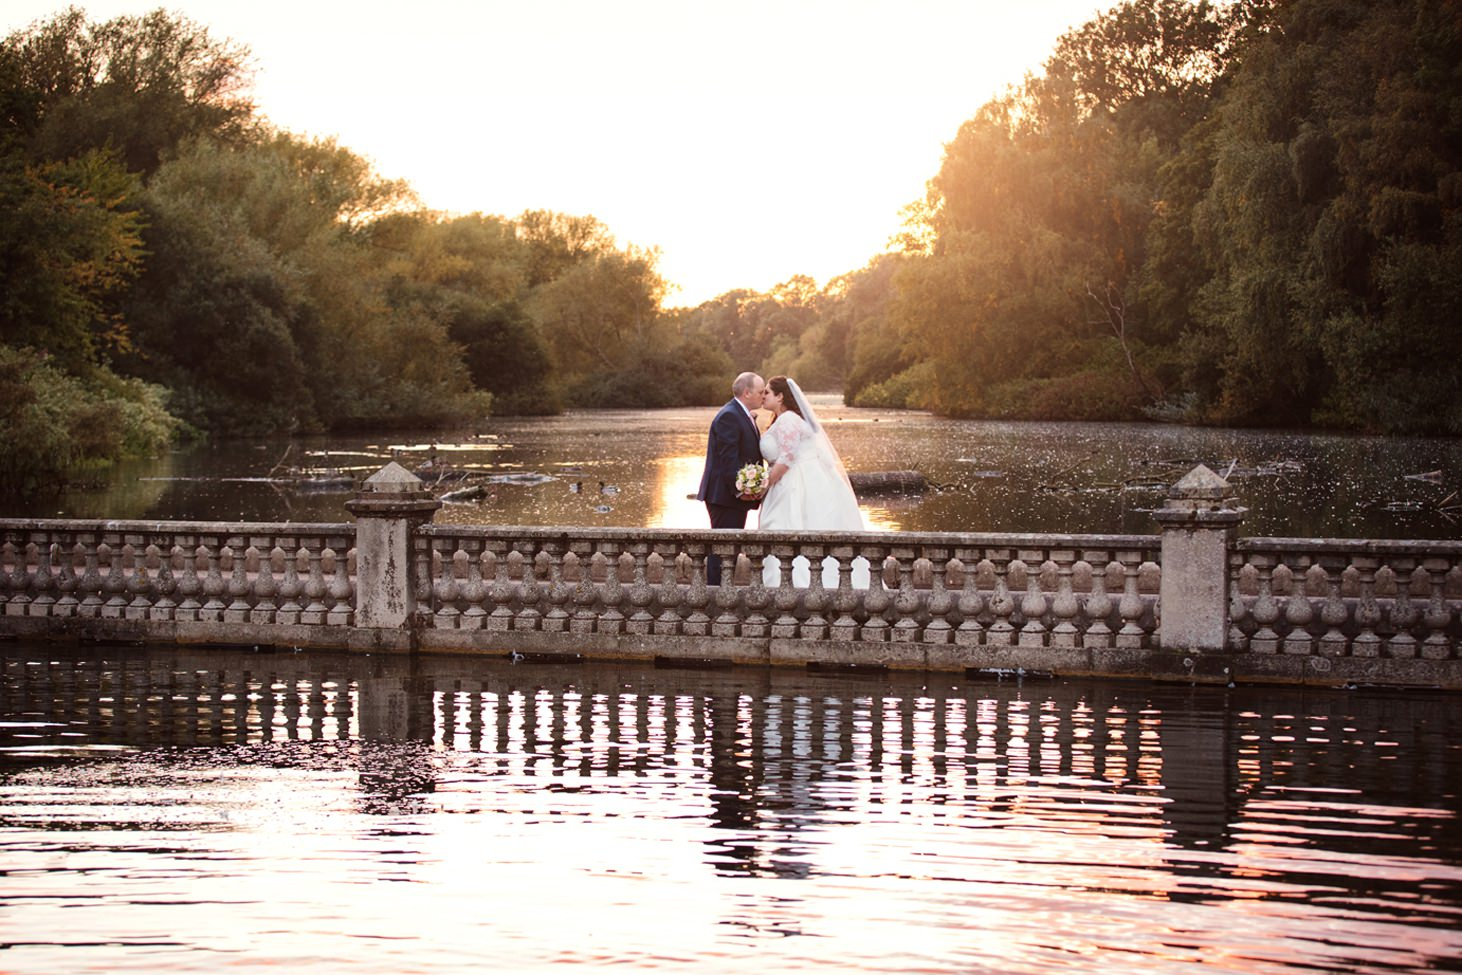 Coombe Abbey wedding photography Sarah Ann Wright 092